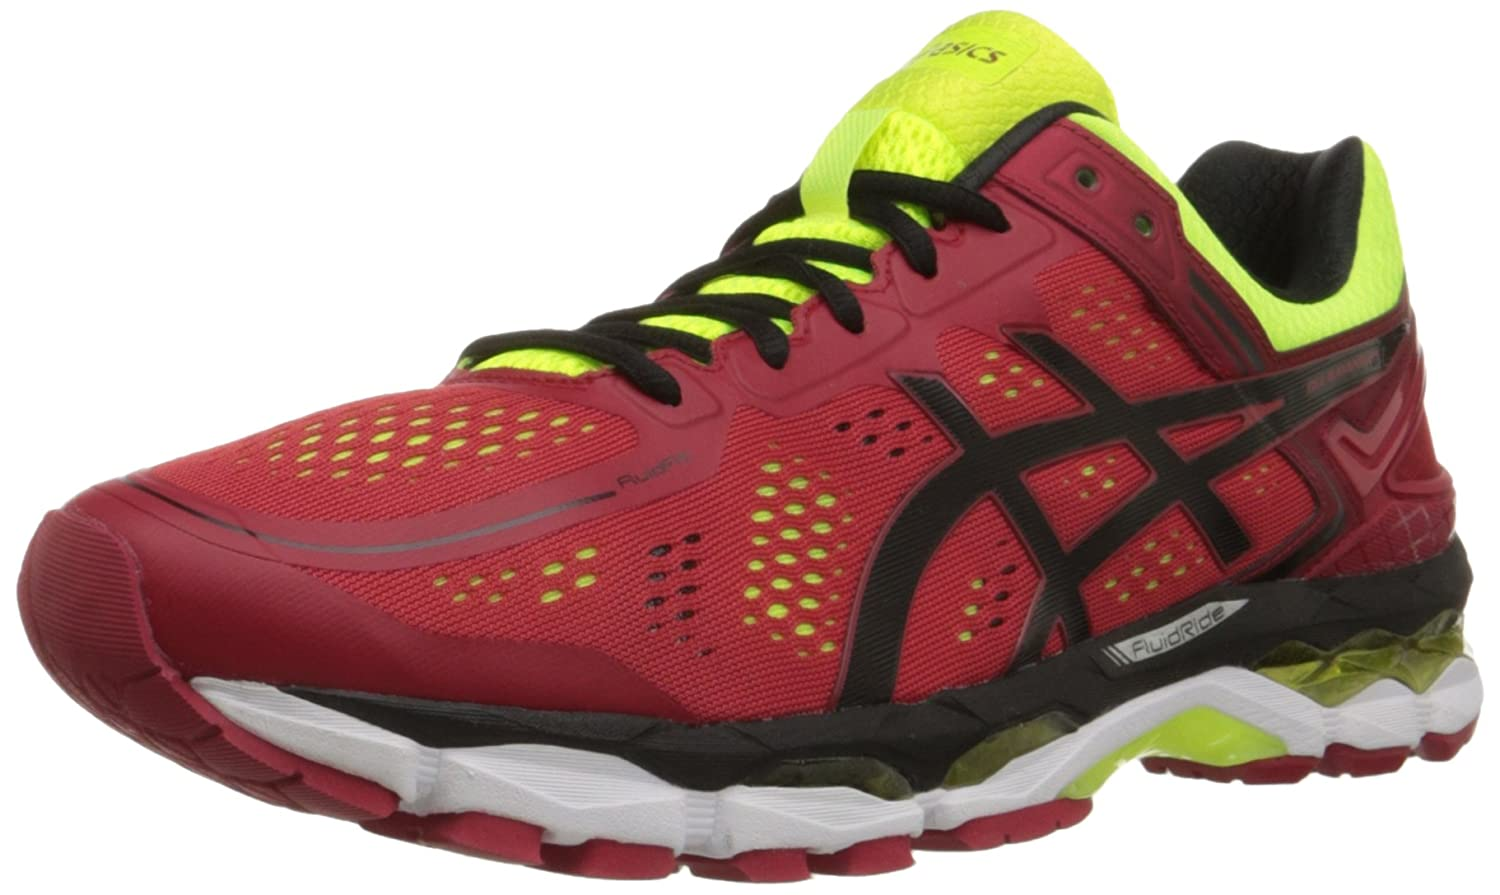 ASICS Men's GEL-Kayano 22 Running Shoe ASICS America Corporation GEL-Kayano 22-M